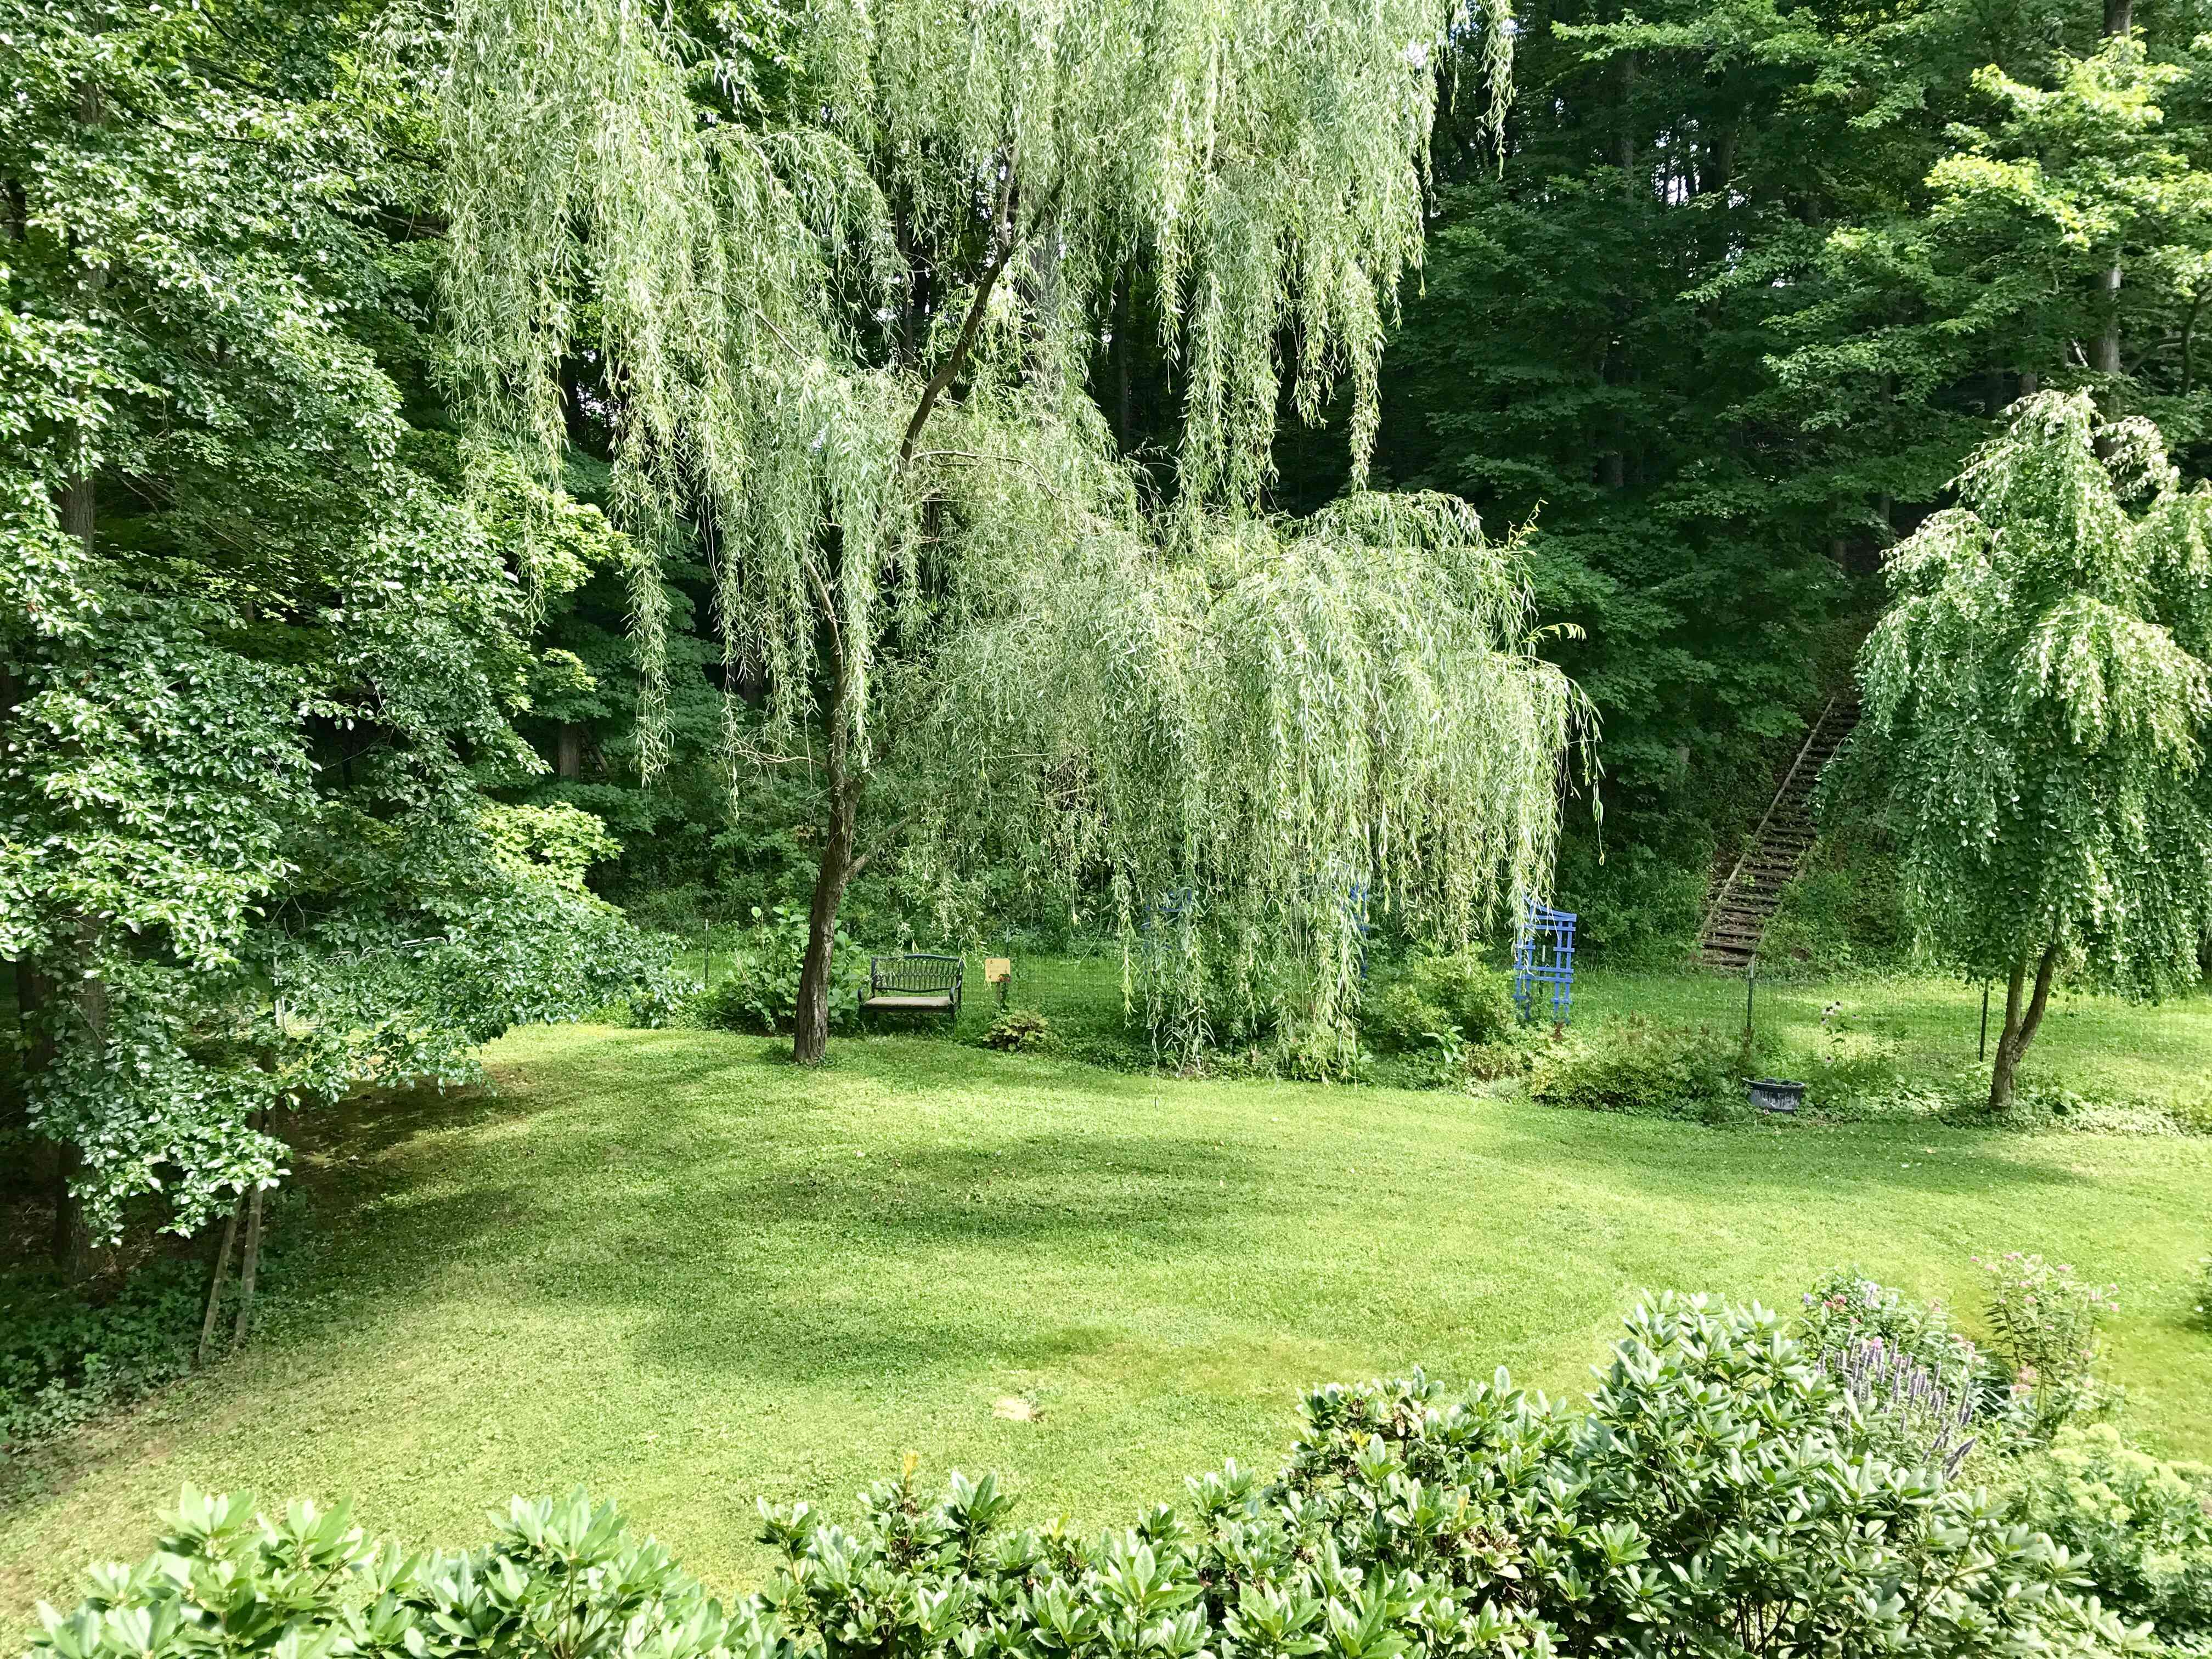 The author's backyard oasis has helped his blood pressure go down.